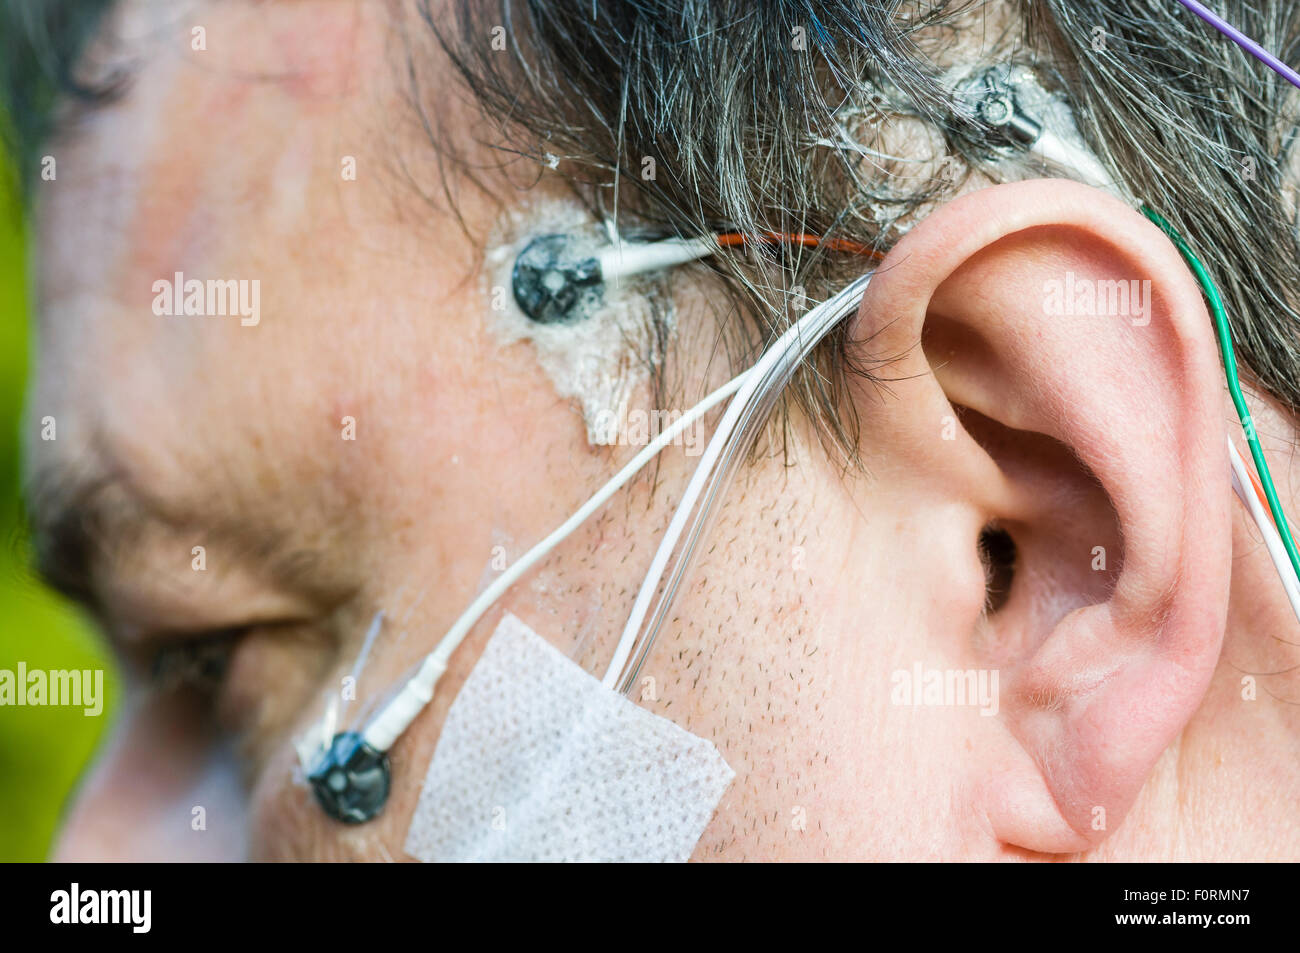 A middle aged man wears polysomnography electrodes to measure brain activity, breathing and movement during sleep. Stock Photo